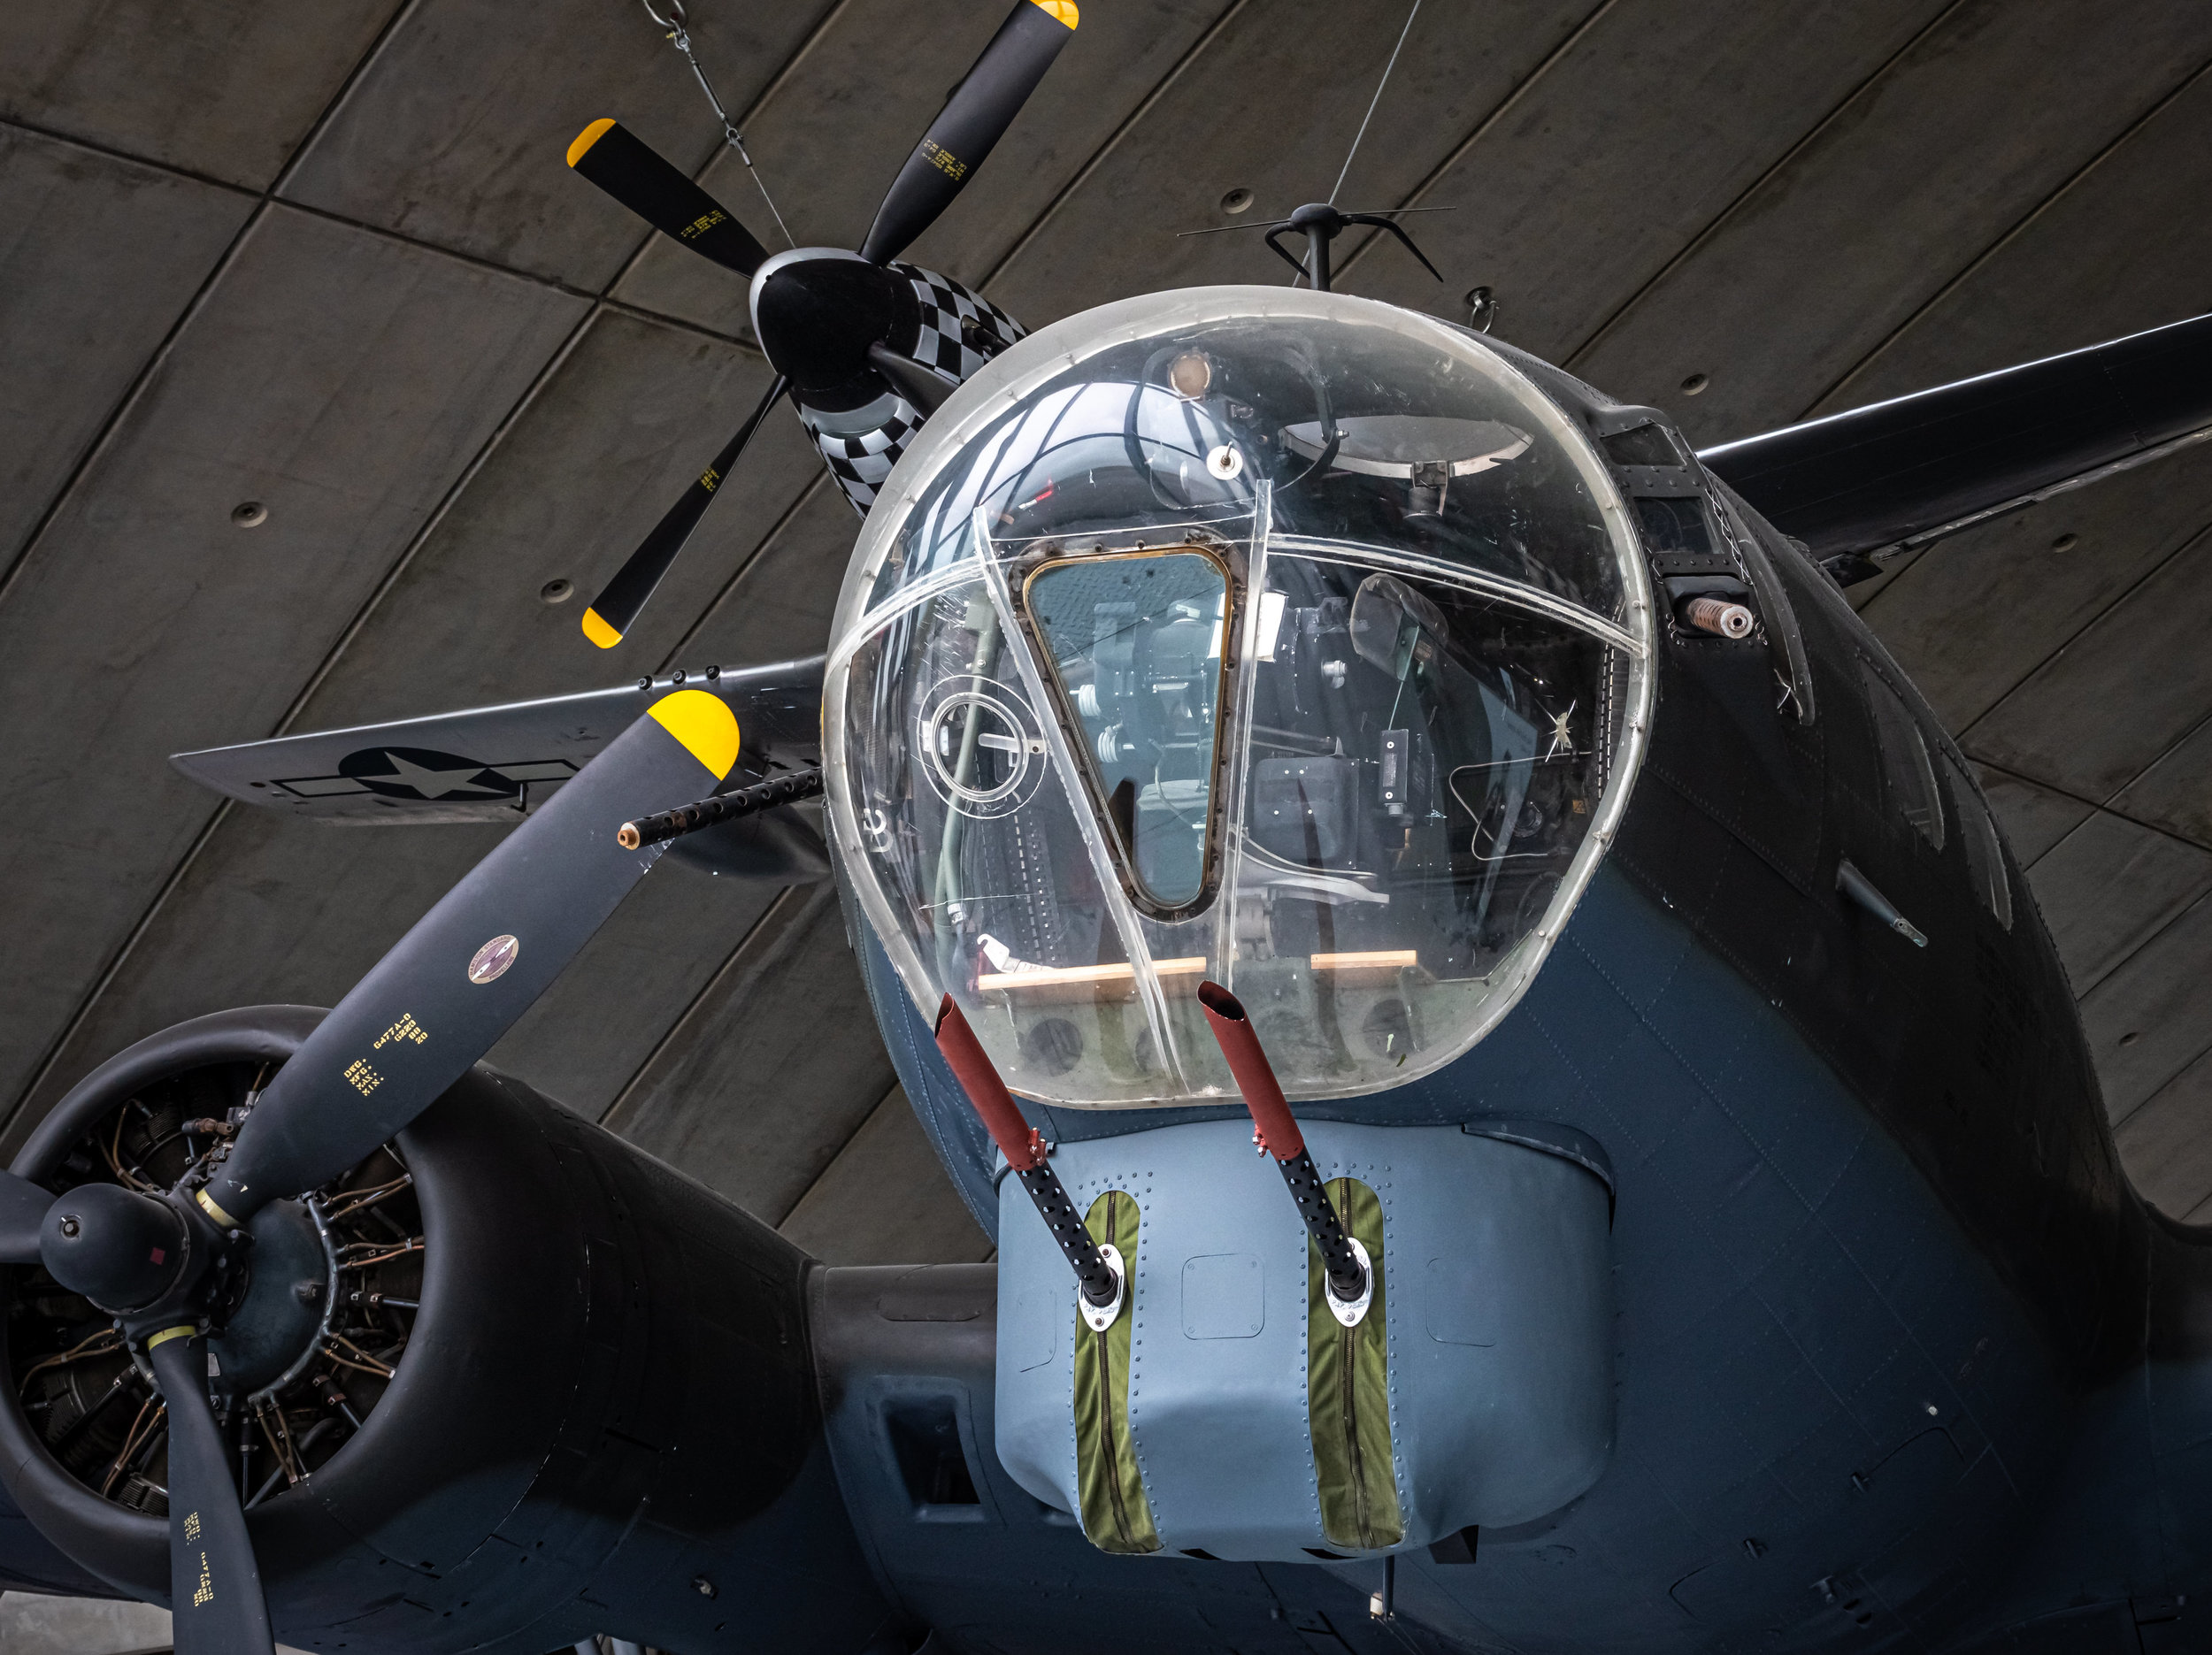 The nose of this B-17 Flying Fortress shows the bombardier's station, twin .50 caliber chin guns and the two side .50's that the bombardier manned when he was not at his Norden bomb sight. Appropriately hanging from the ceiling overhead is a P-51 Mustang, the great long-range fighter that so often protected the B-17s.